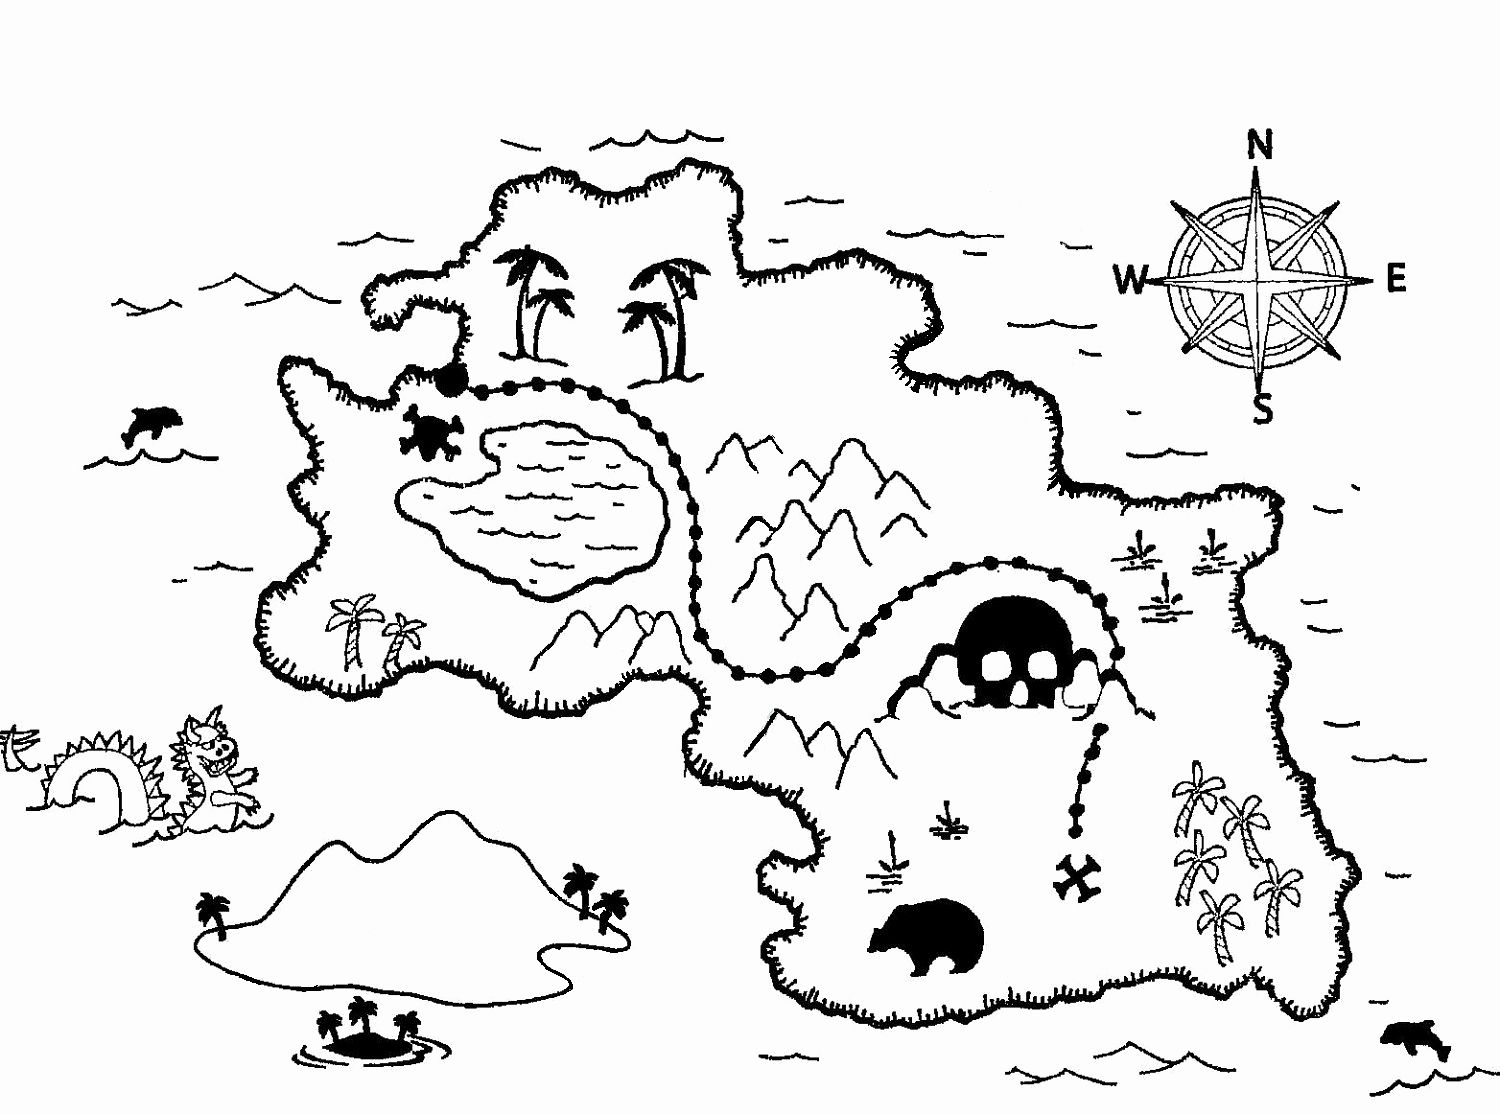 Map Coloring Pages For Kindergarten Best Of Coloring Pirate Map Coloring Pages Blank Treasure Page Pirate Coloring Pages Pirate Treasure Maps Treasure Maps